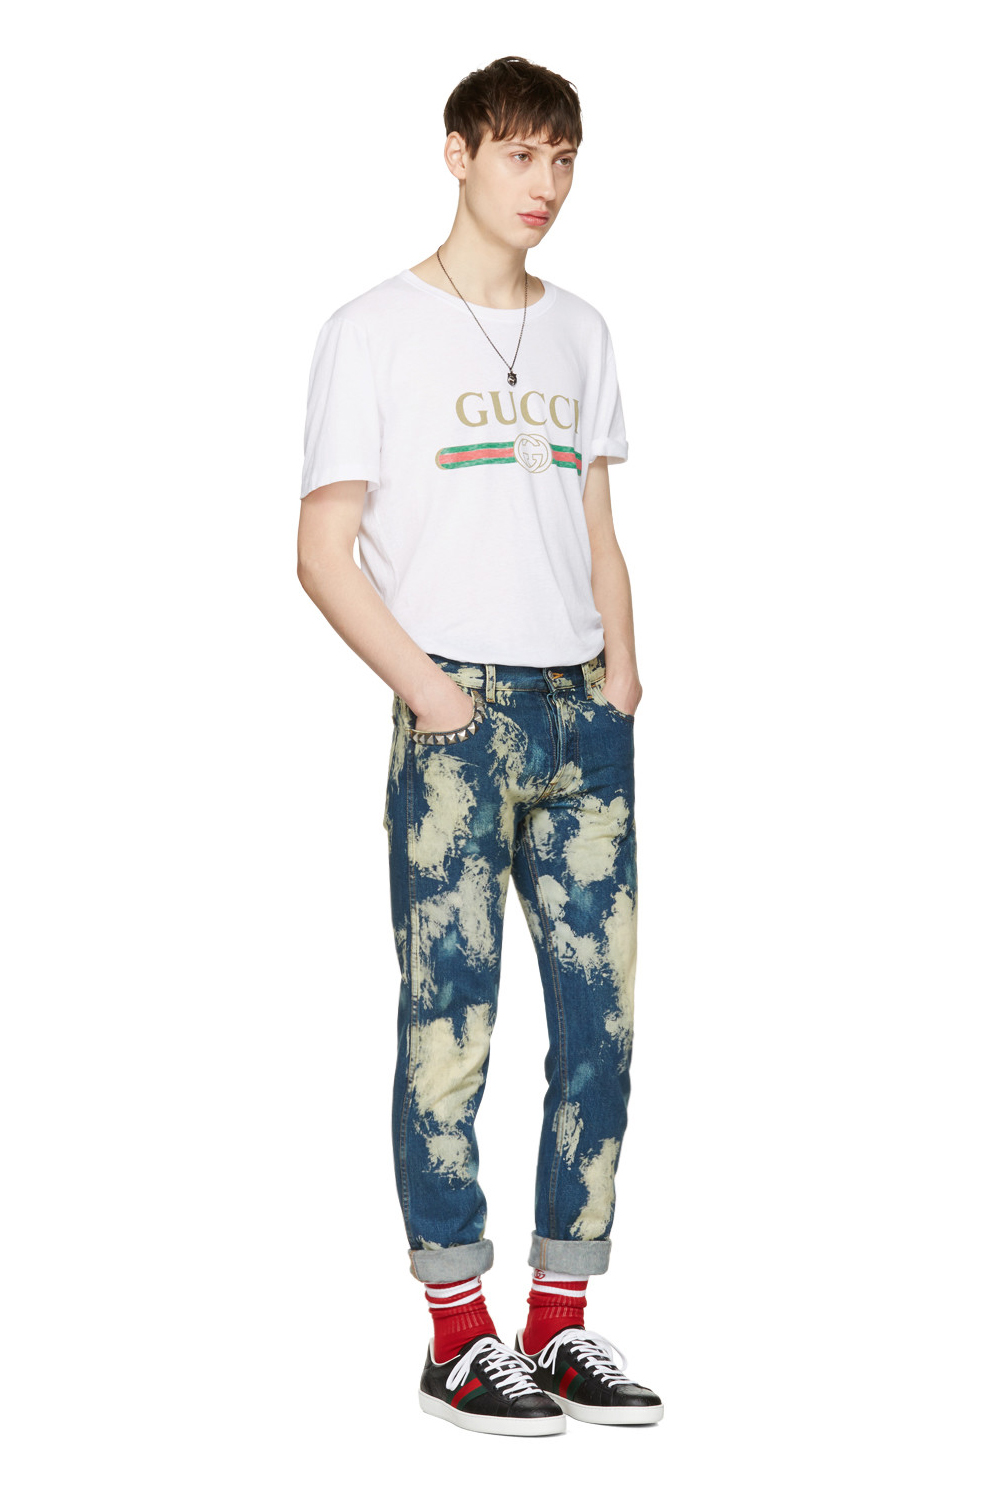 Gucci's Bleached Punk-Inspired Denim Jeans SSENSE - 1807619